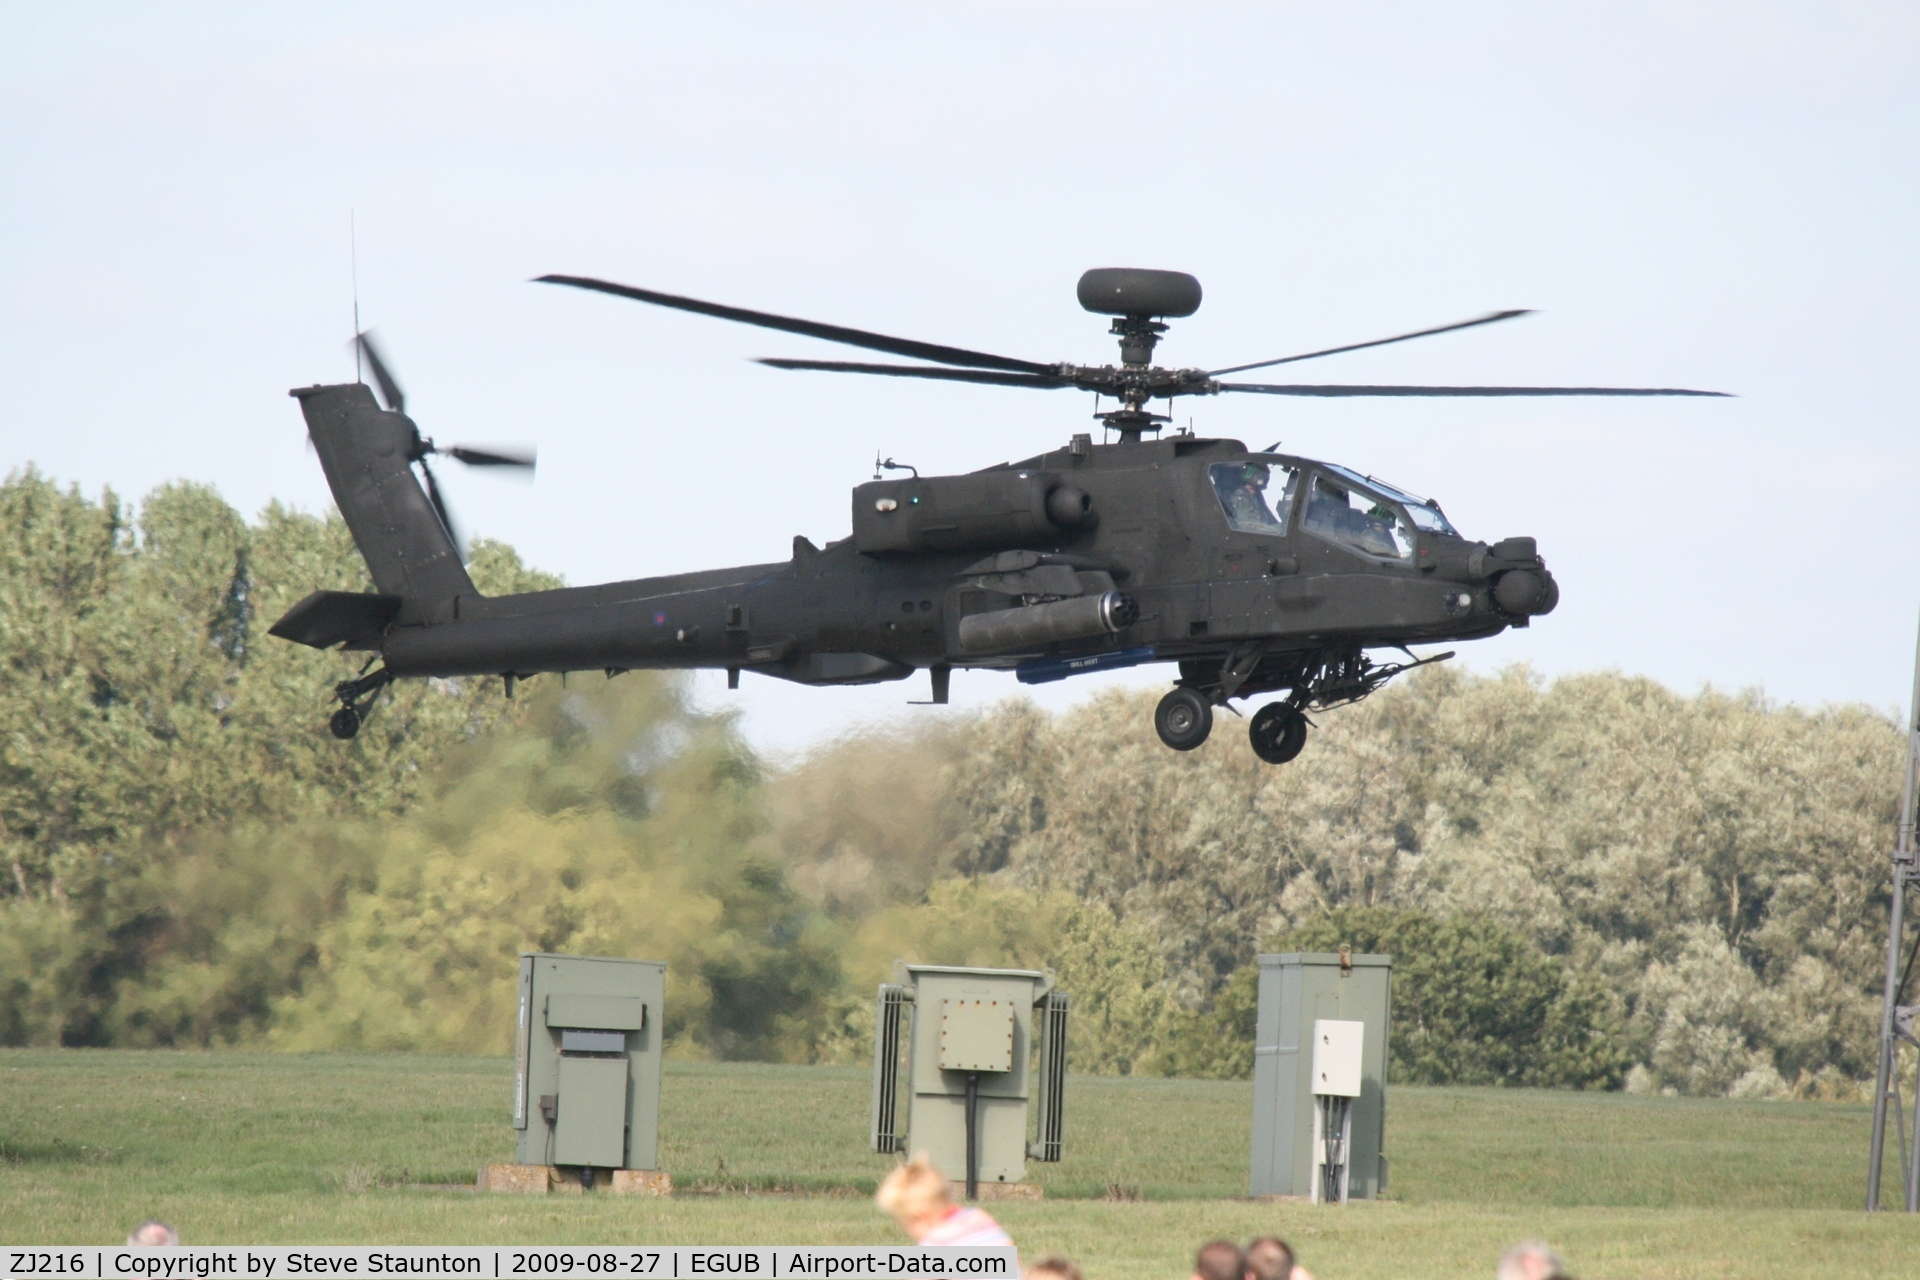 ZJ216, Westland Apache AH.1 C/N WAH.050, Taken at RAF Benson Families Day, August 2009